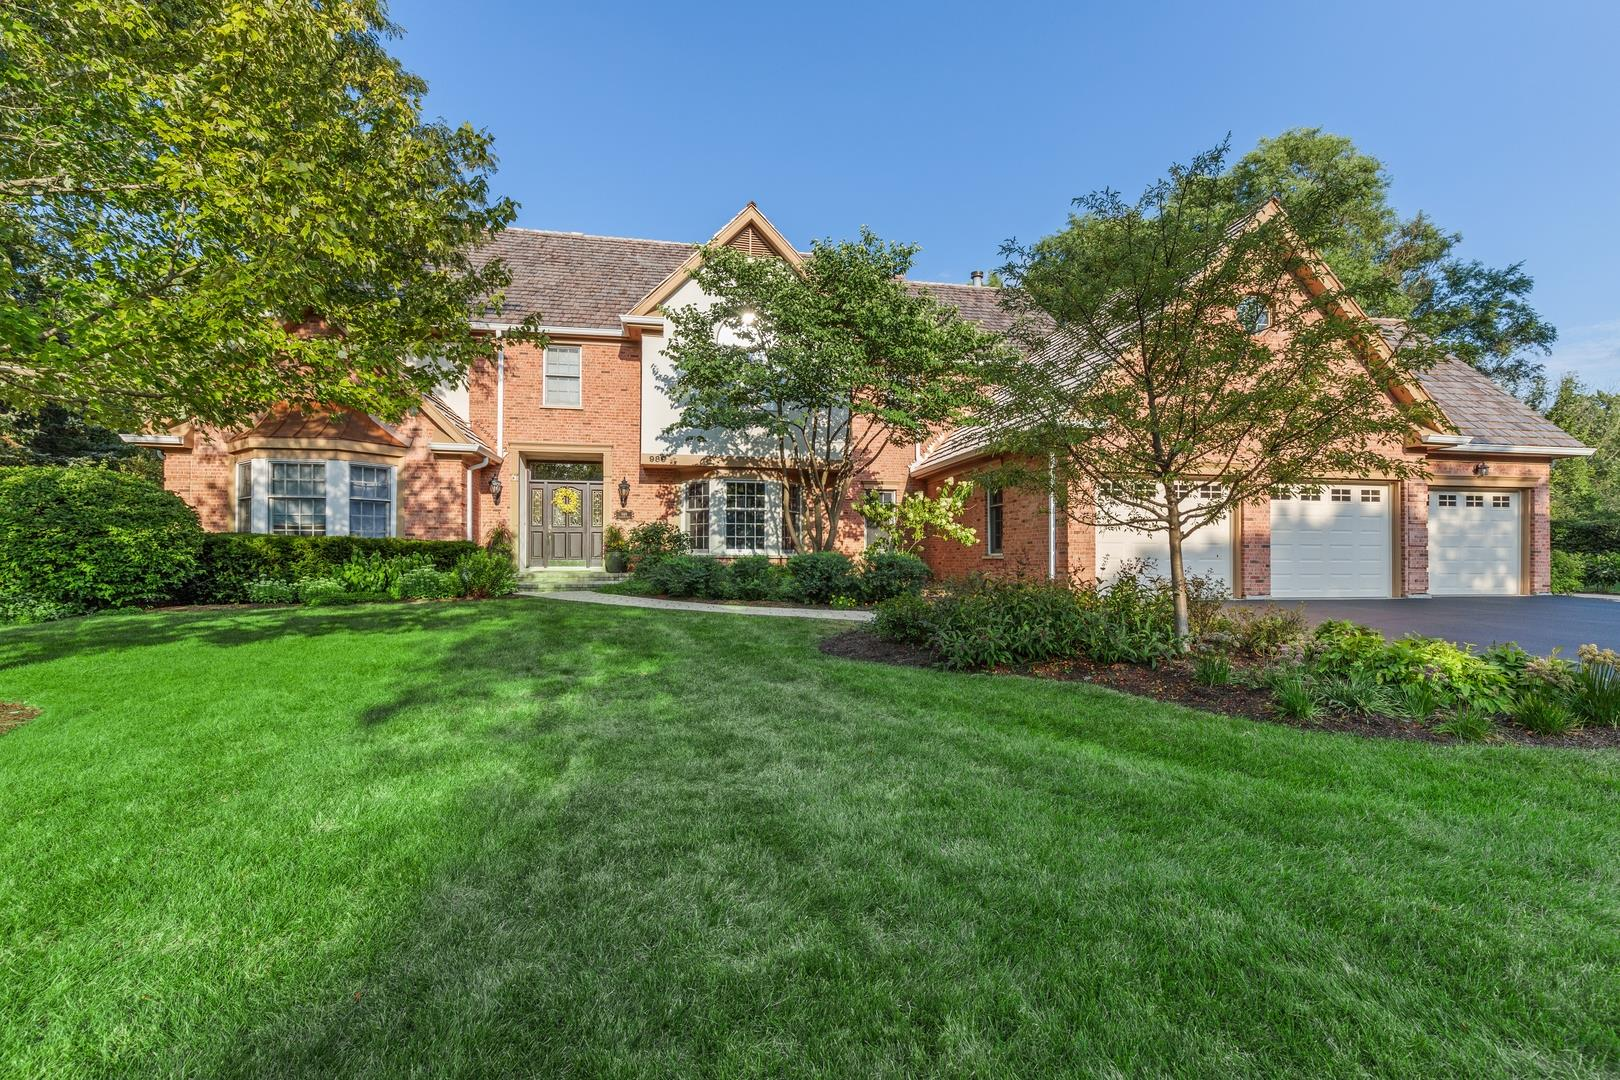 989 Lakewood Drive, Lake Forest, IL 60045 - #: 10975287